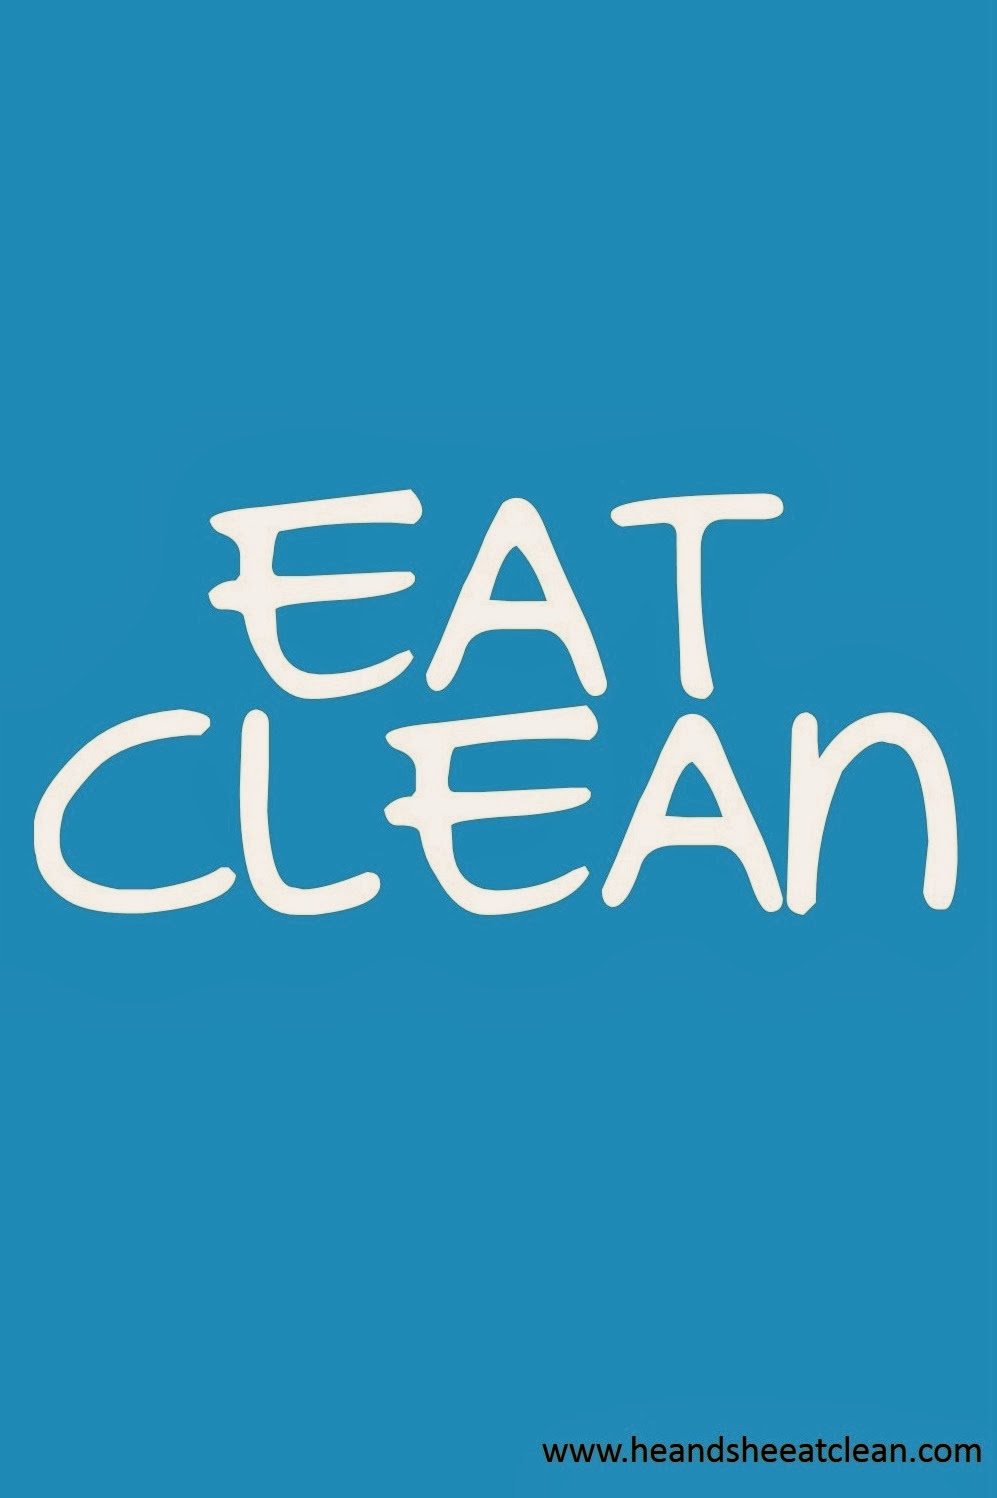 Free Motivational Cell Phone Wallpaper Backgrounds He She Eat Clean Healthy Recipes Workout Plans